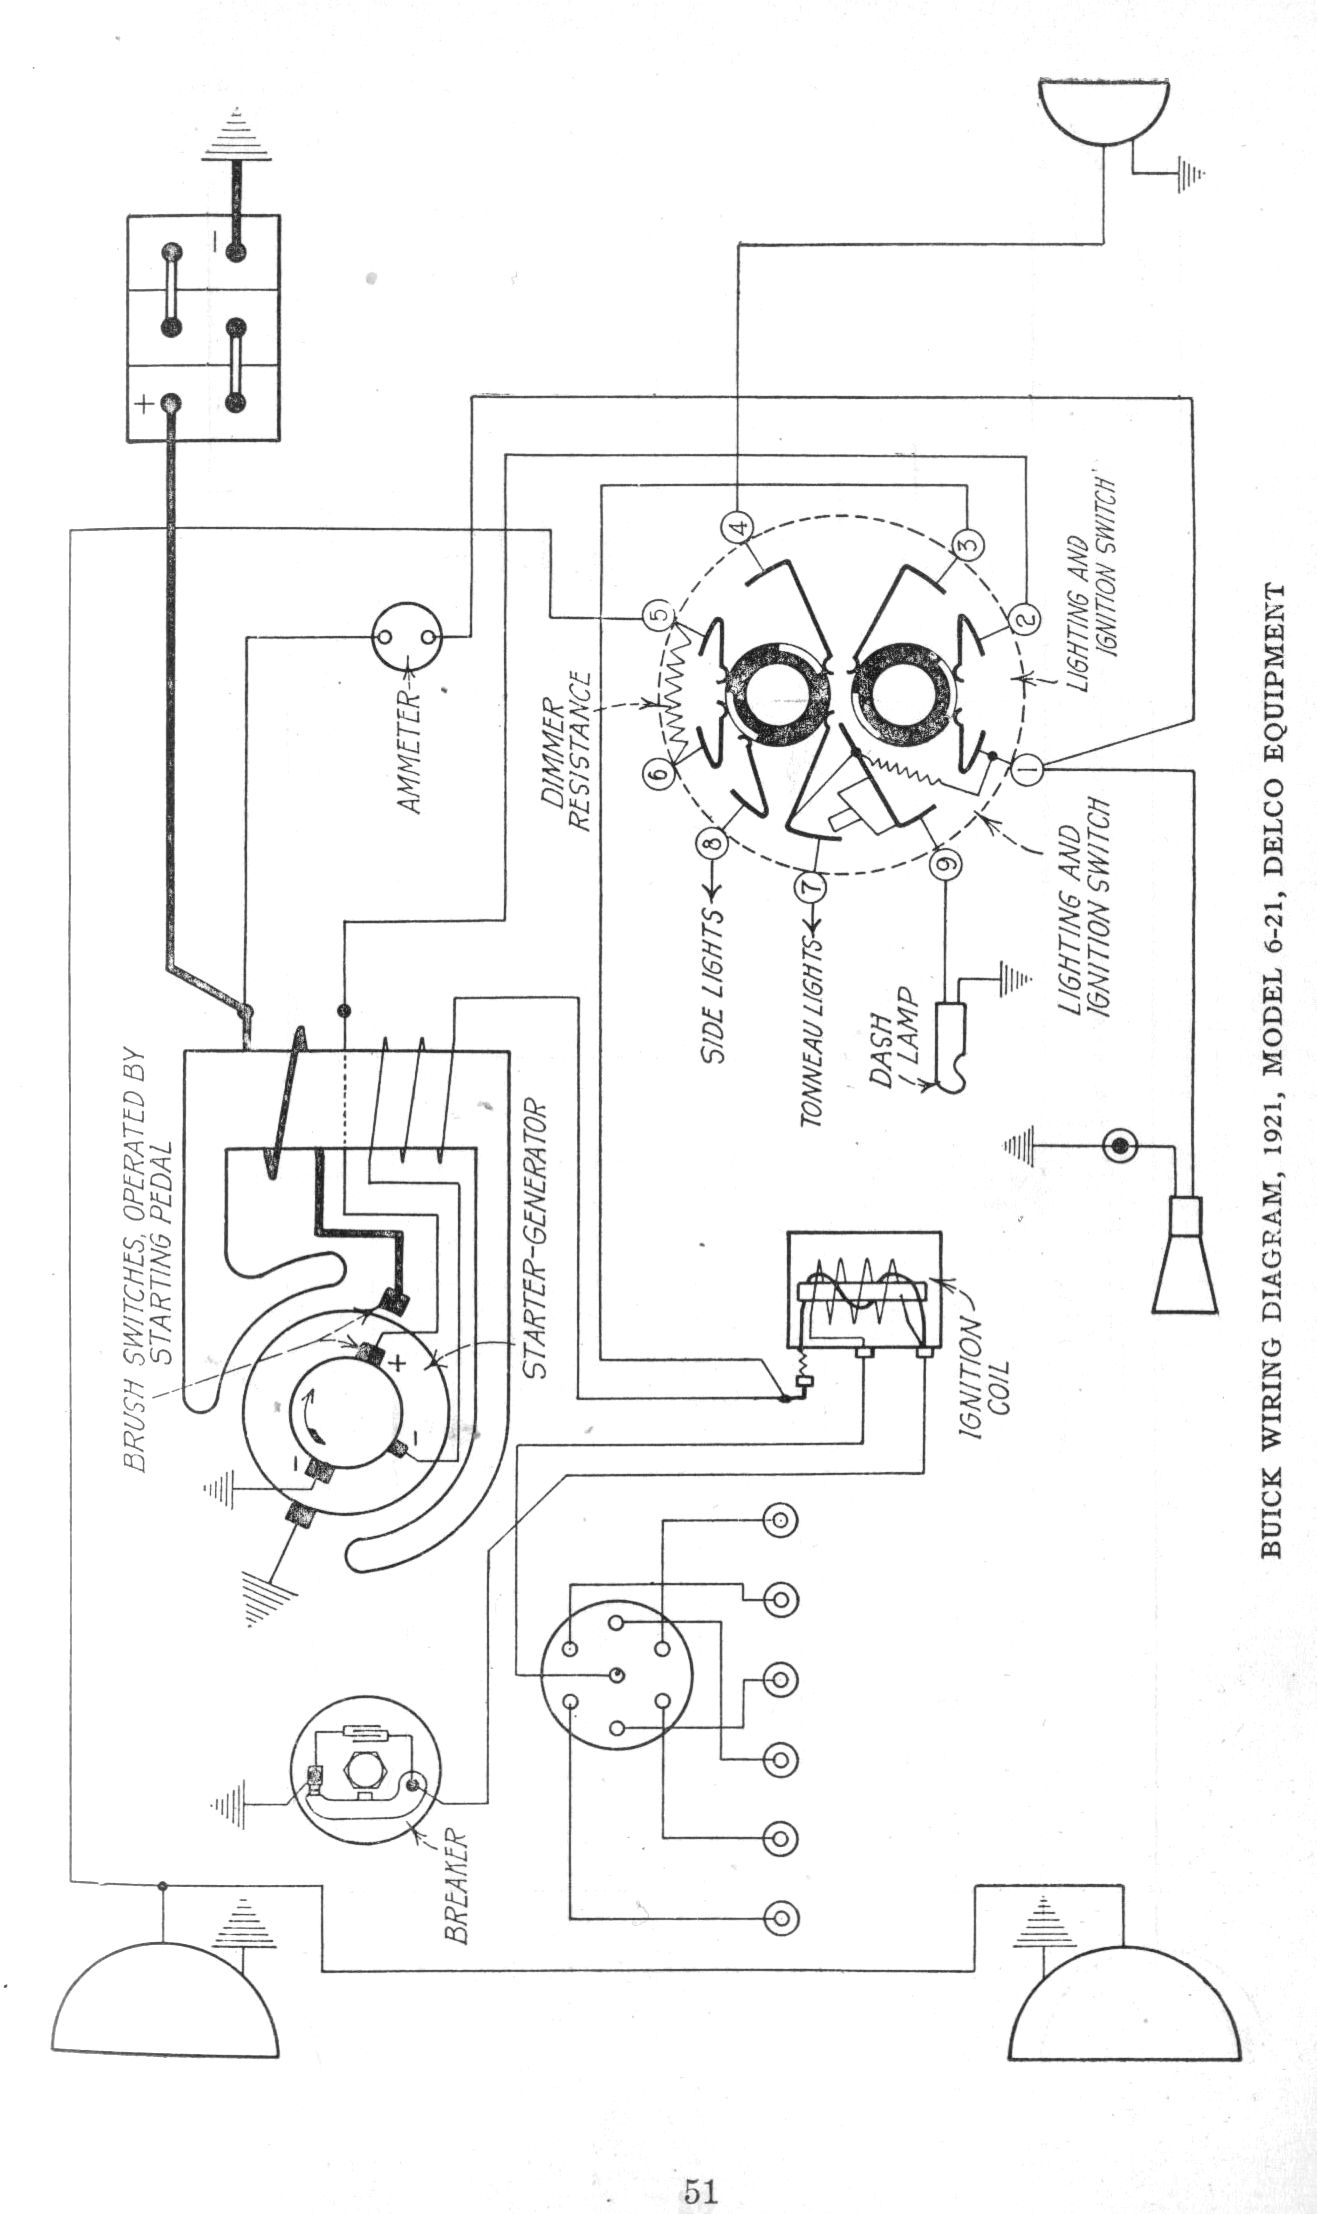 wiring diagram automotive